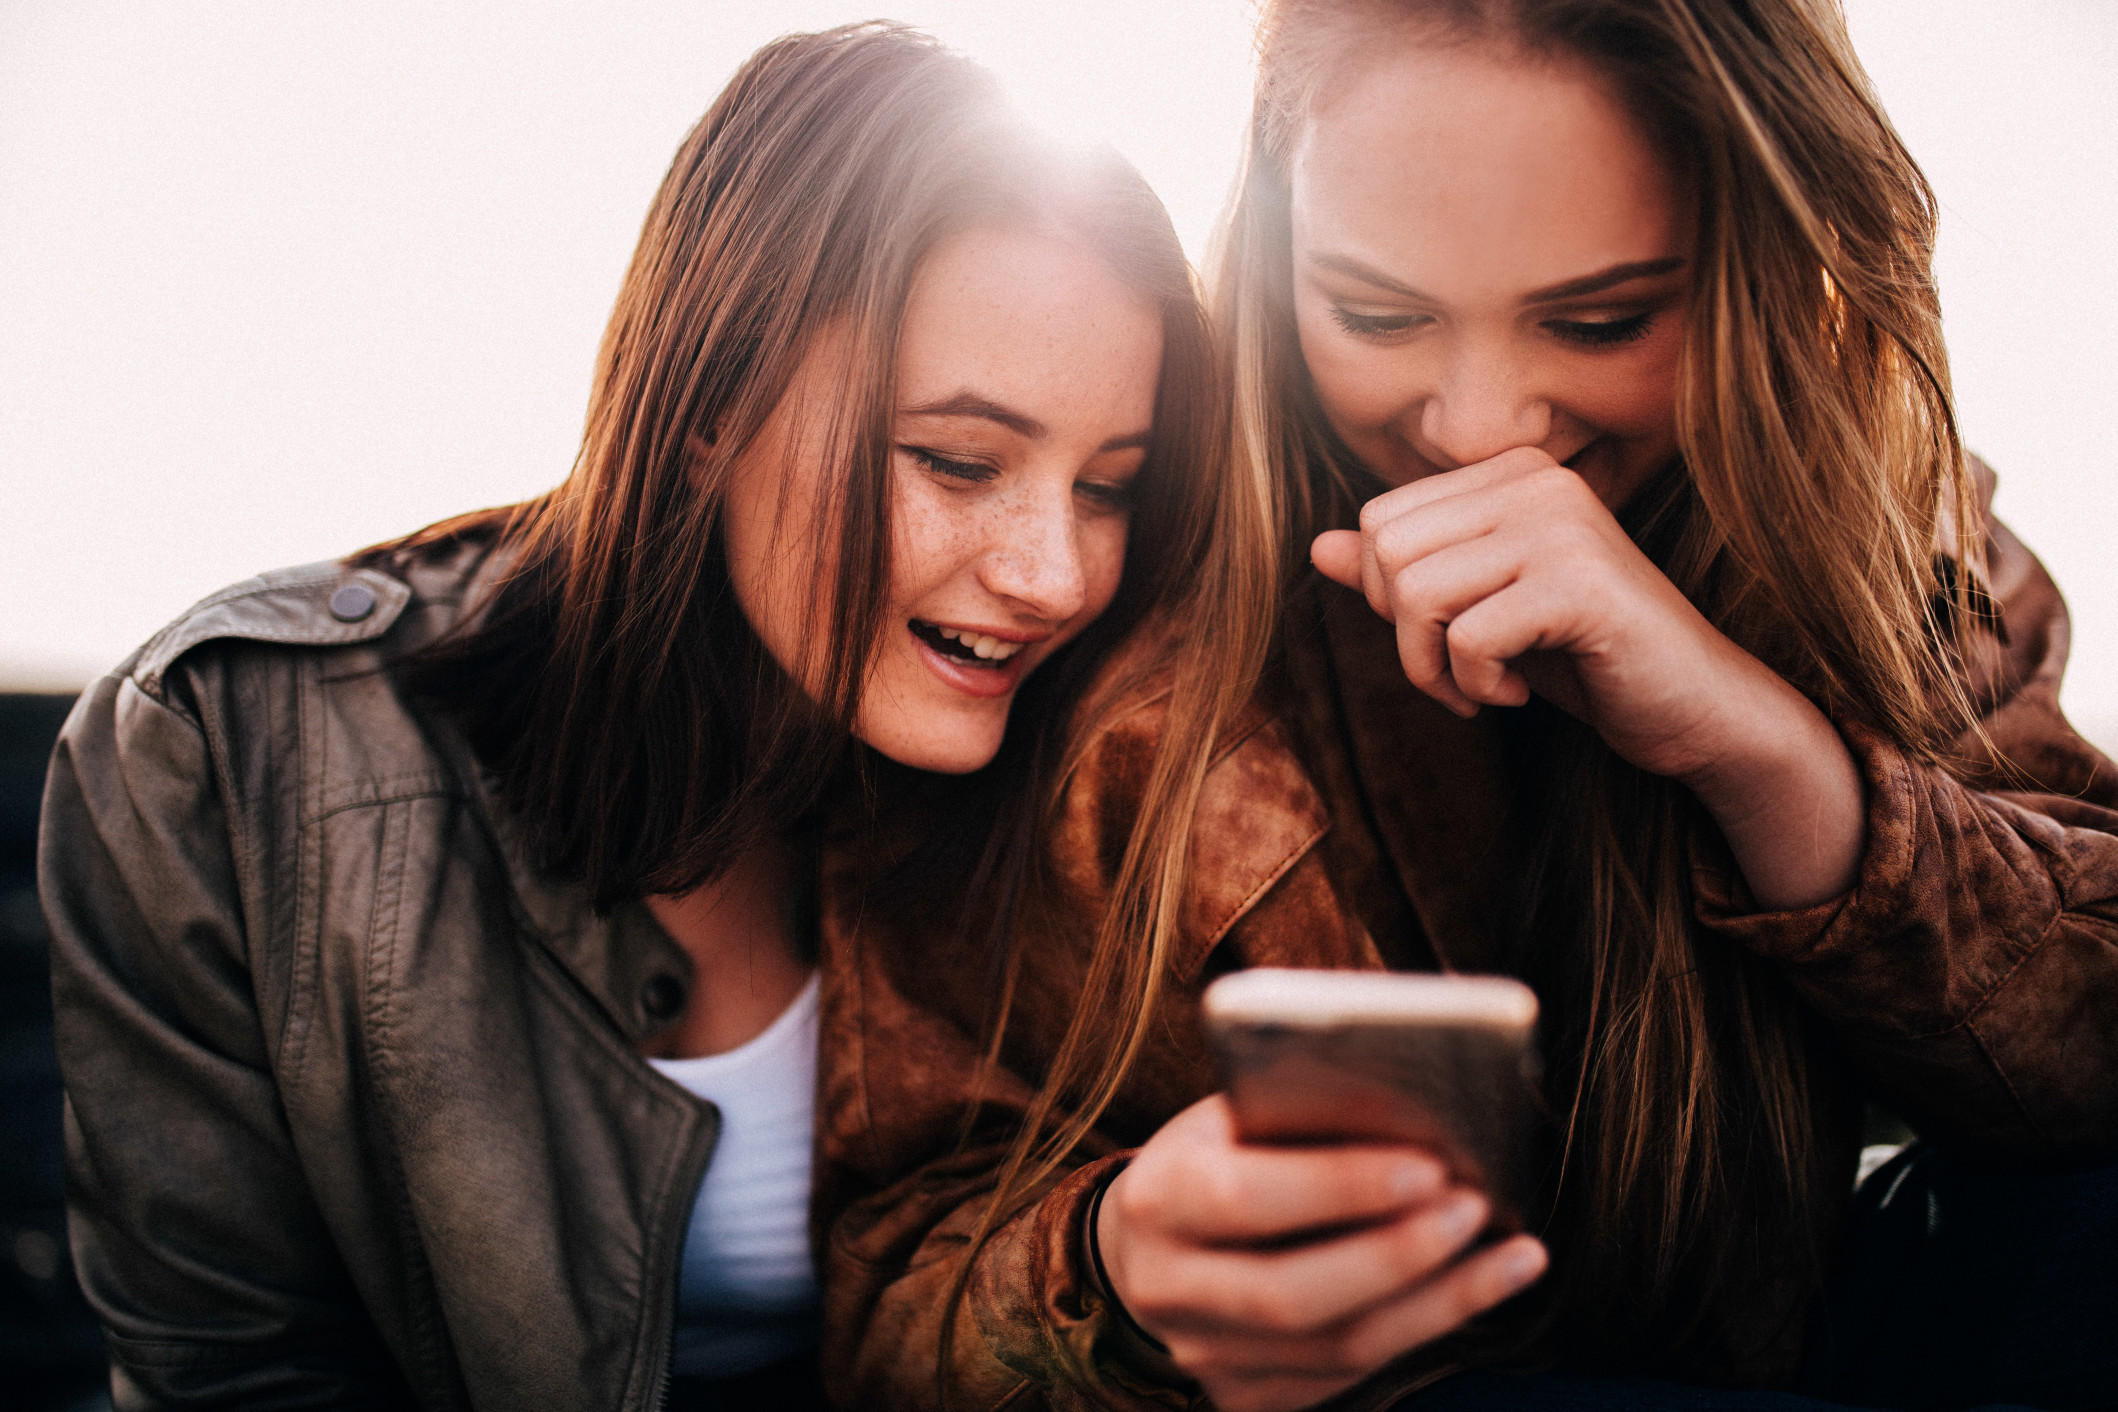 Teenage girls looking at funny photos on smartphone and laughing t20 g8 VN Kb